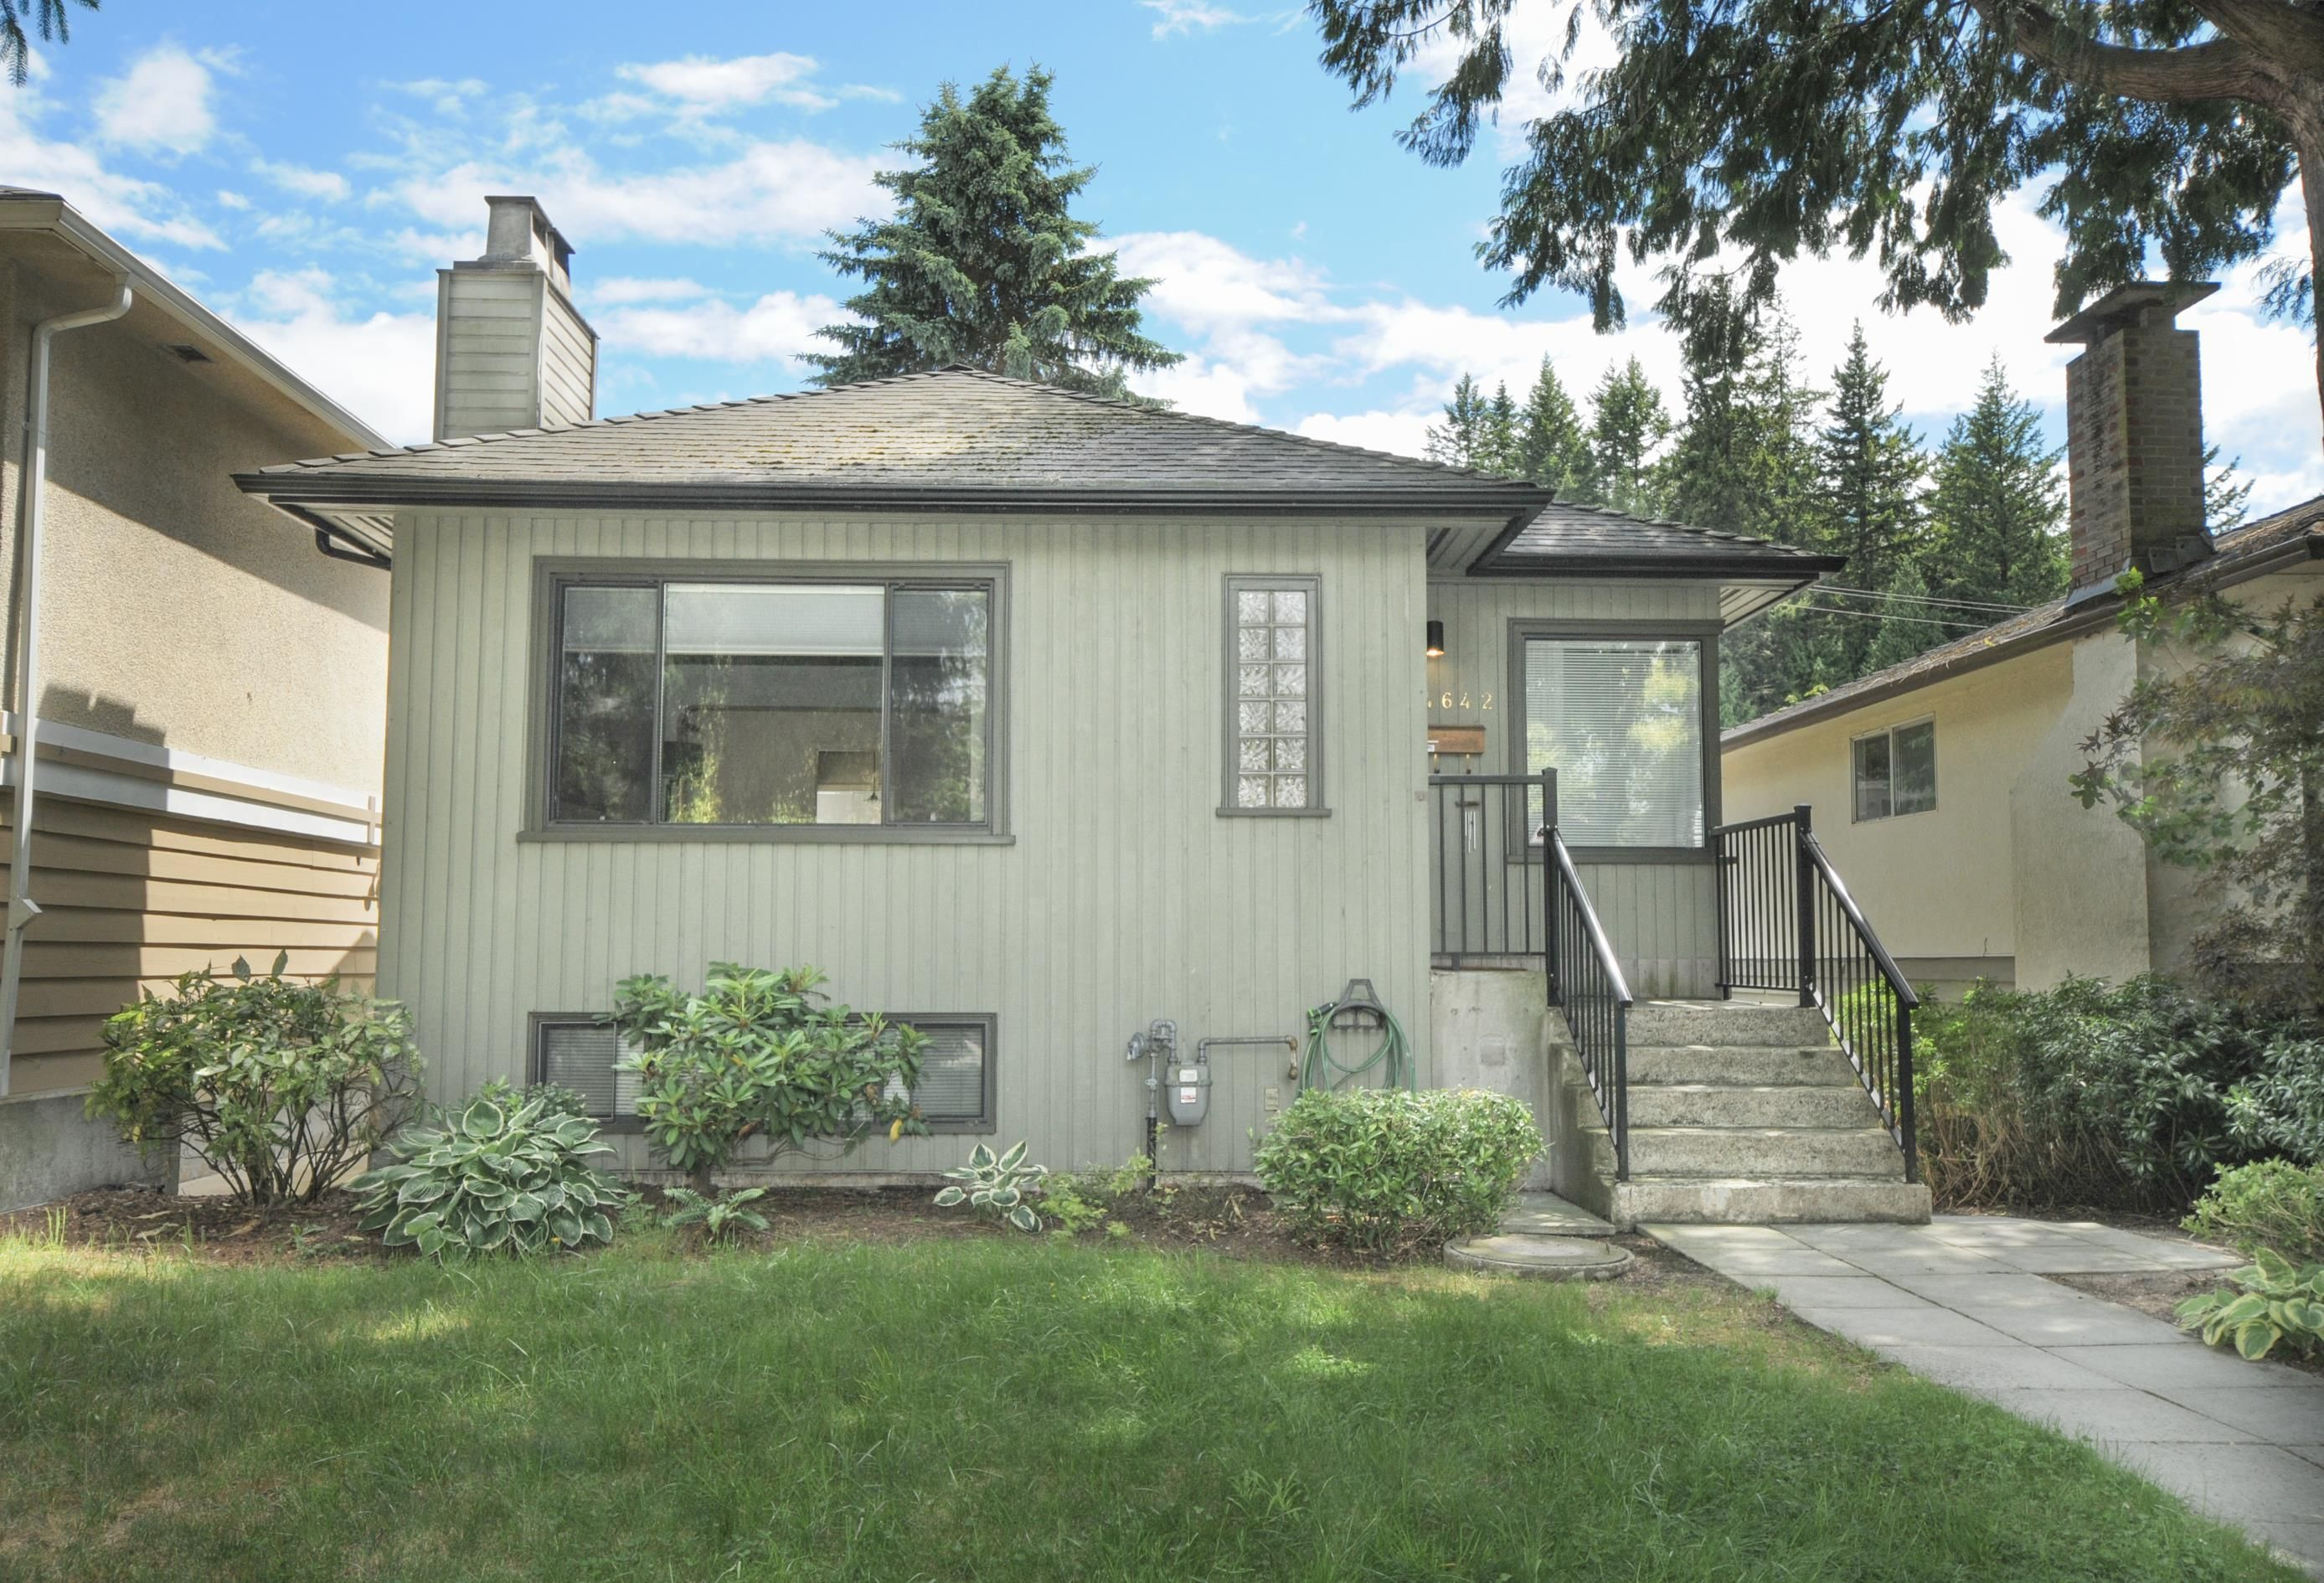 Main Photo: 4642 W 15TH Avenue in Vancouver: Point Grey House for sale (Vancouver West)  : MLS®# R2611091